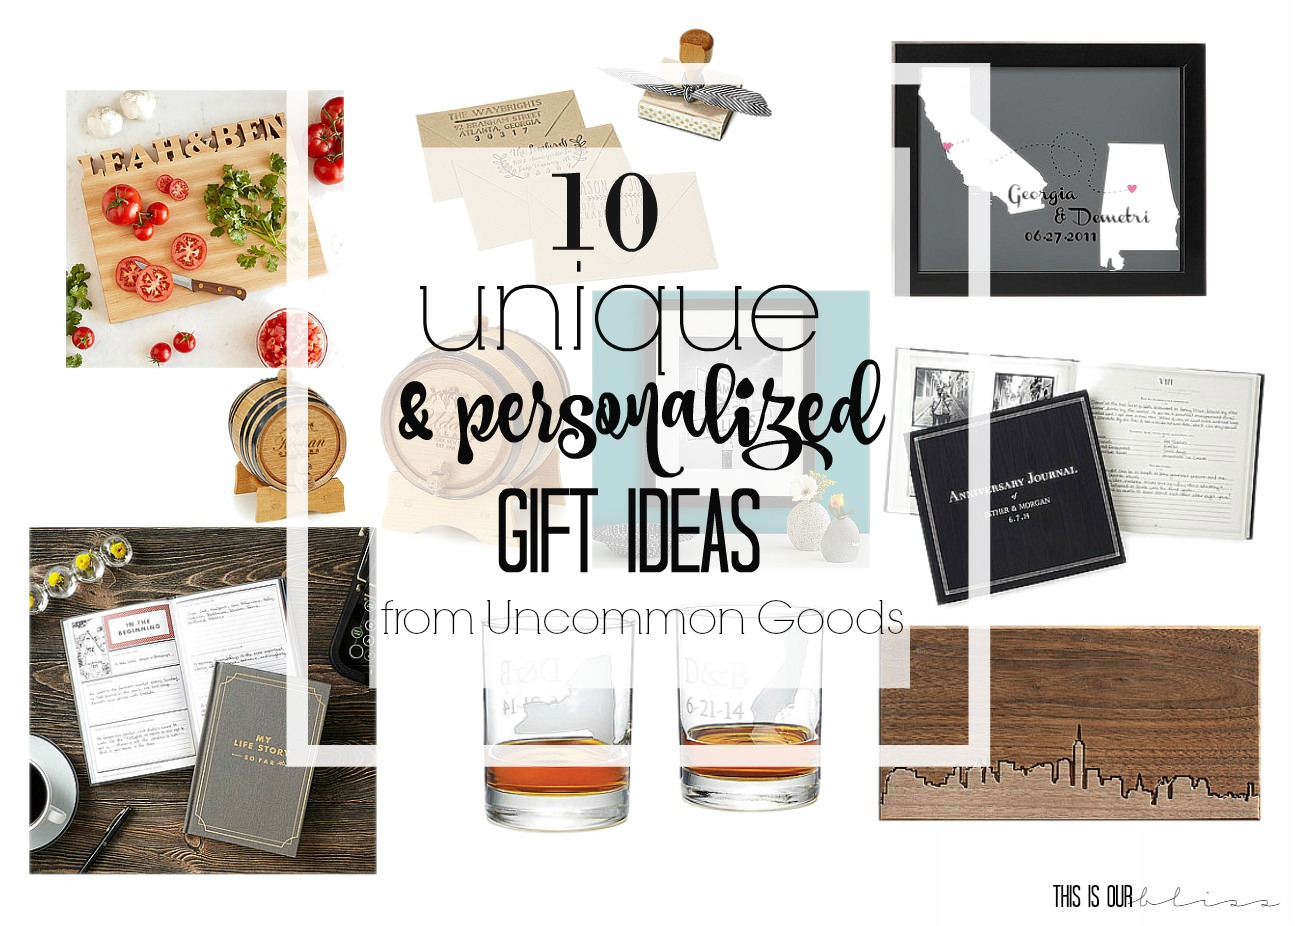 Where to buy unique and personalized gifts 10 unique and personalized gift ideas from uncommongoods this is our bliss solutioingenieria